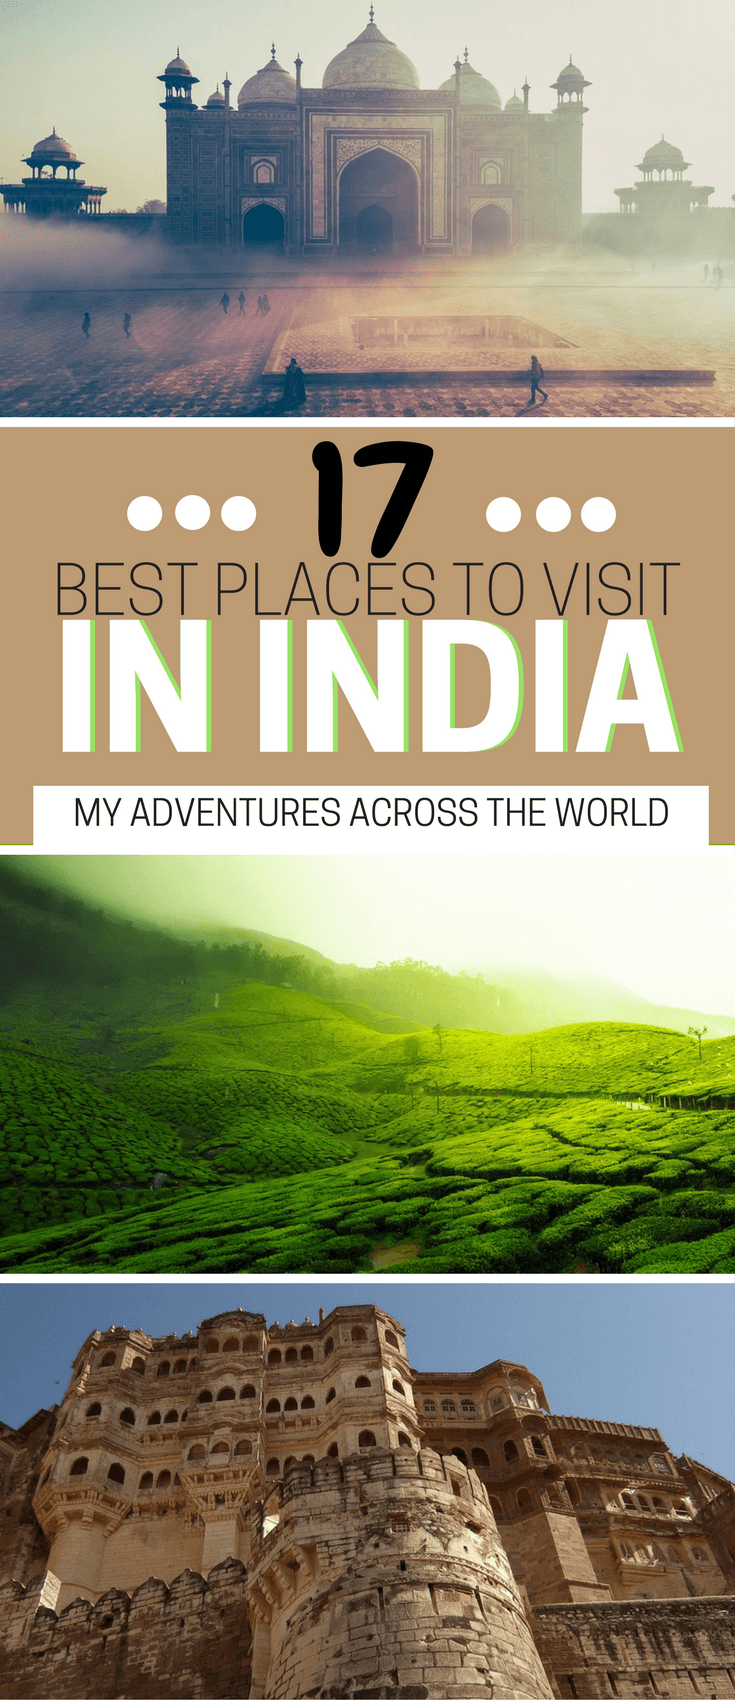 Learn about the best places to visit in India - via @clautavani